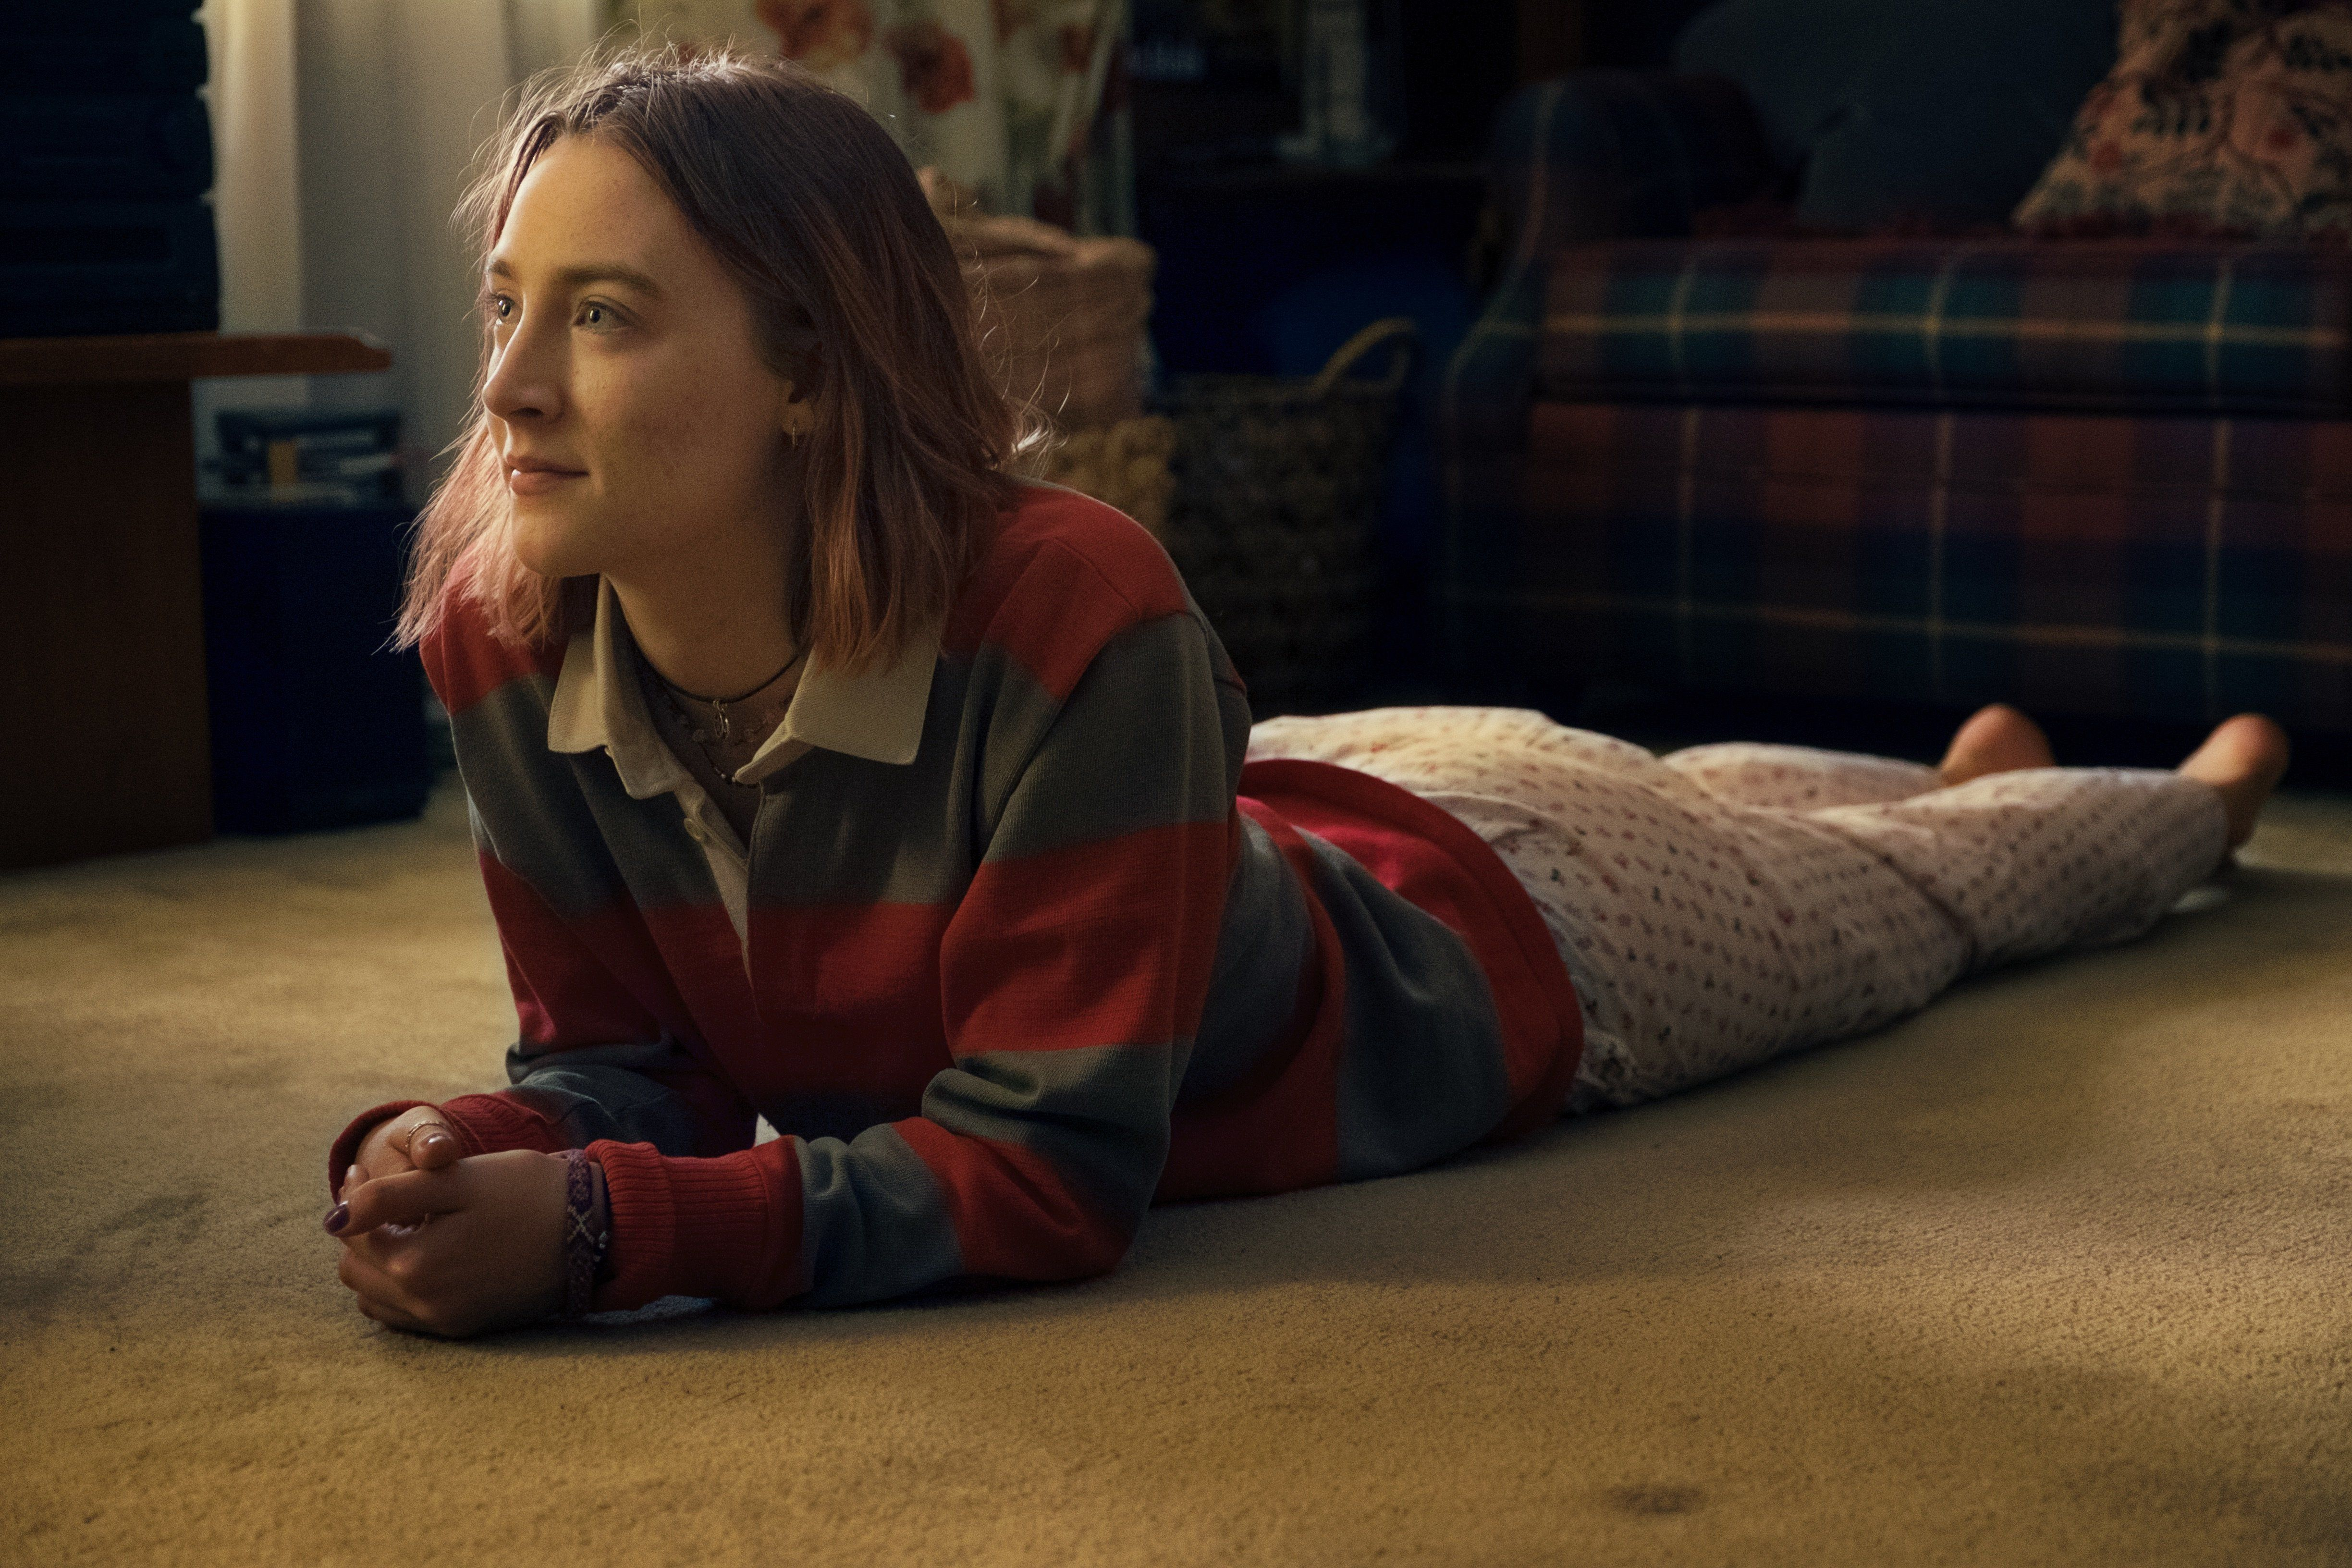 Greta Gerwig's 'Lady Bird' Is One Of Film's Best Coming-Of-Age Stories